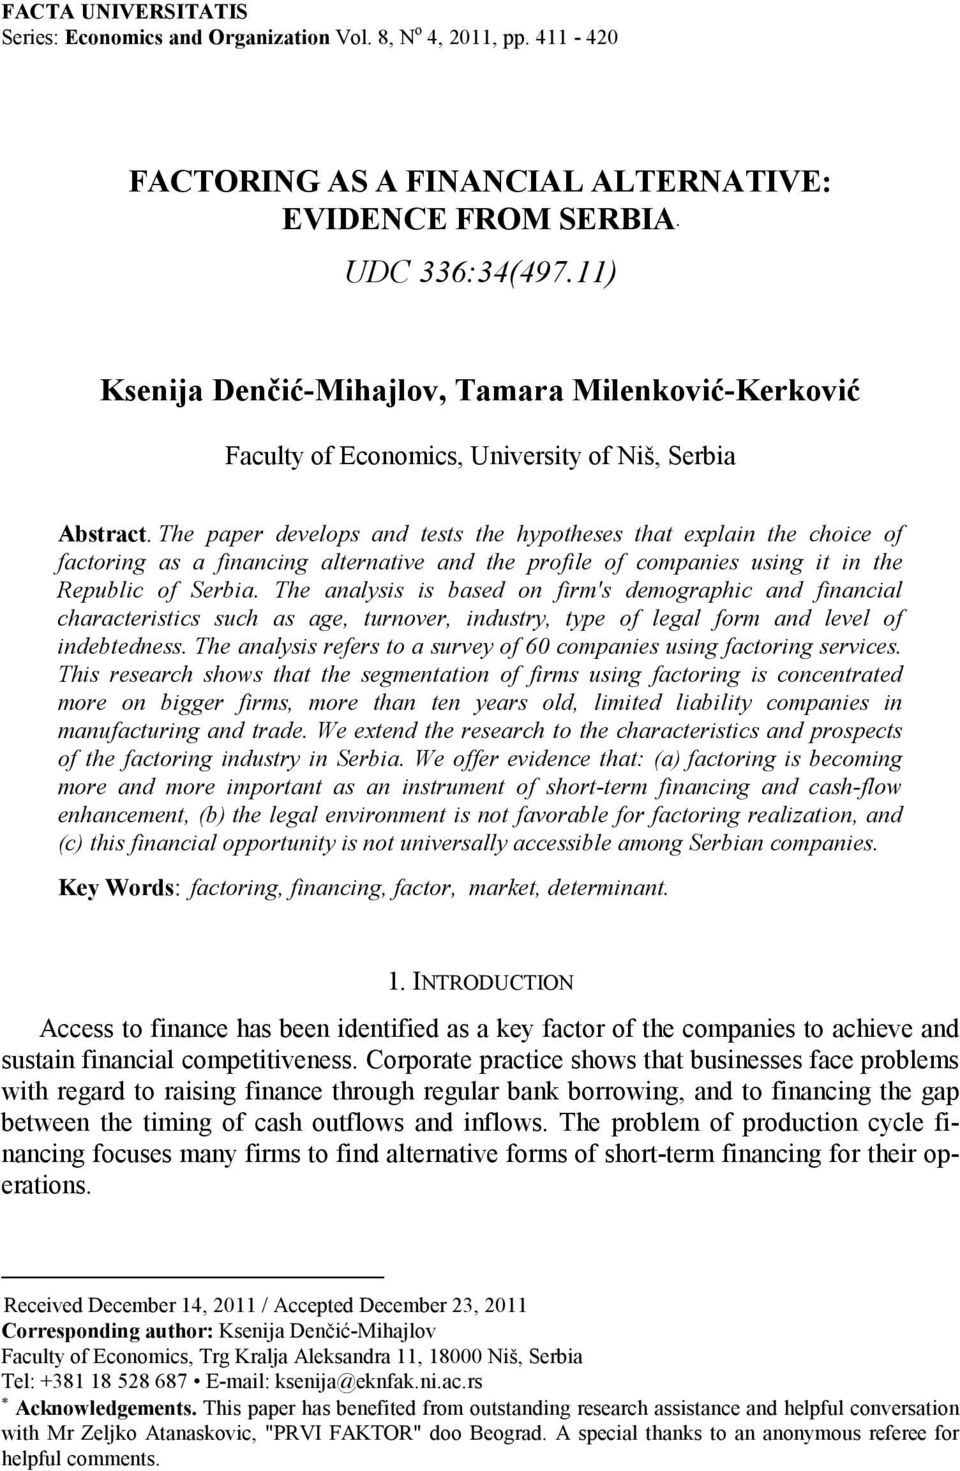 The paper develops and tests the hypotheses that explain the choice of factoring as a financing alternative and the profile of companies using it in the Republic of Serbia.